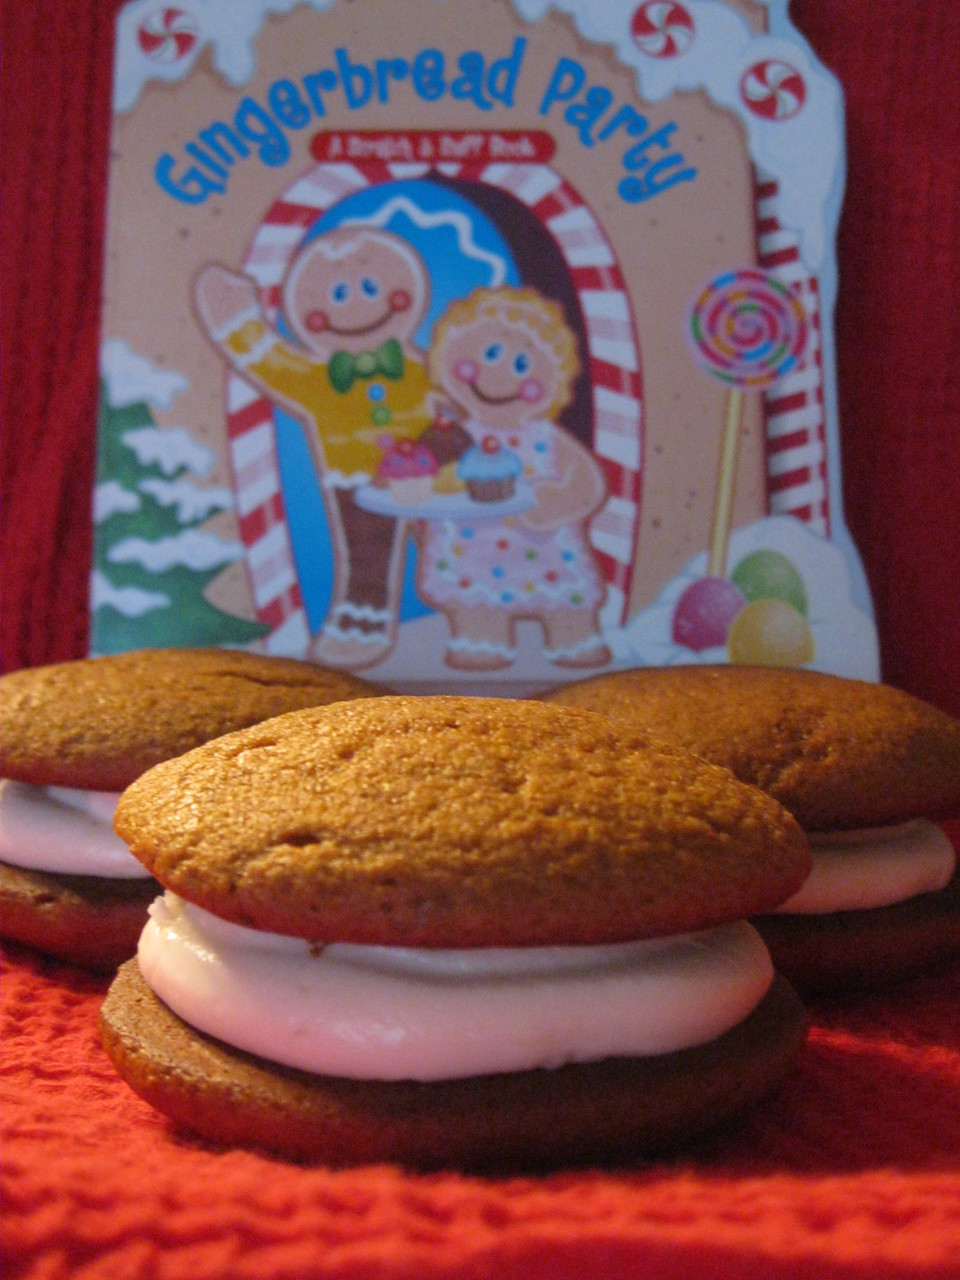 12 Pack- Medium Gingerbread Whoopie Pies (Cream Cheese Filled, Birthday Party Size)